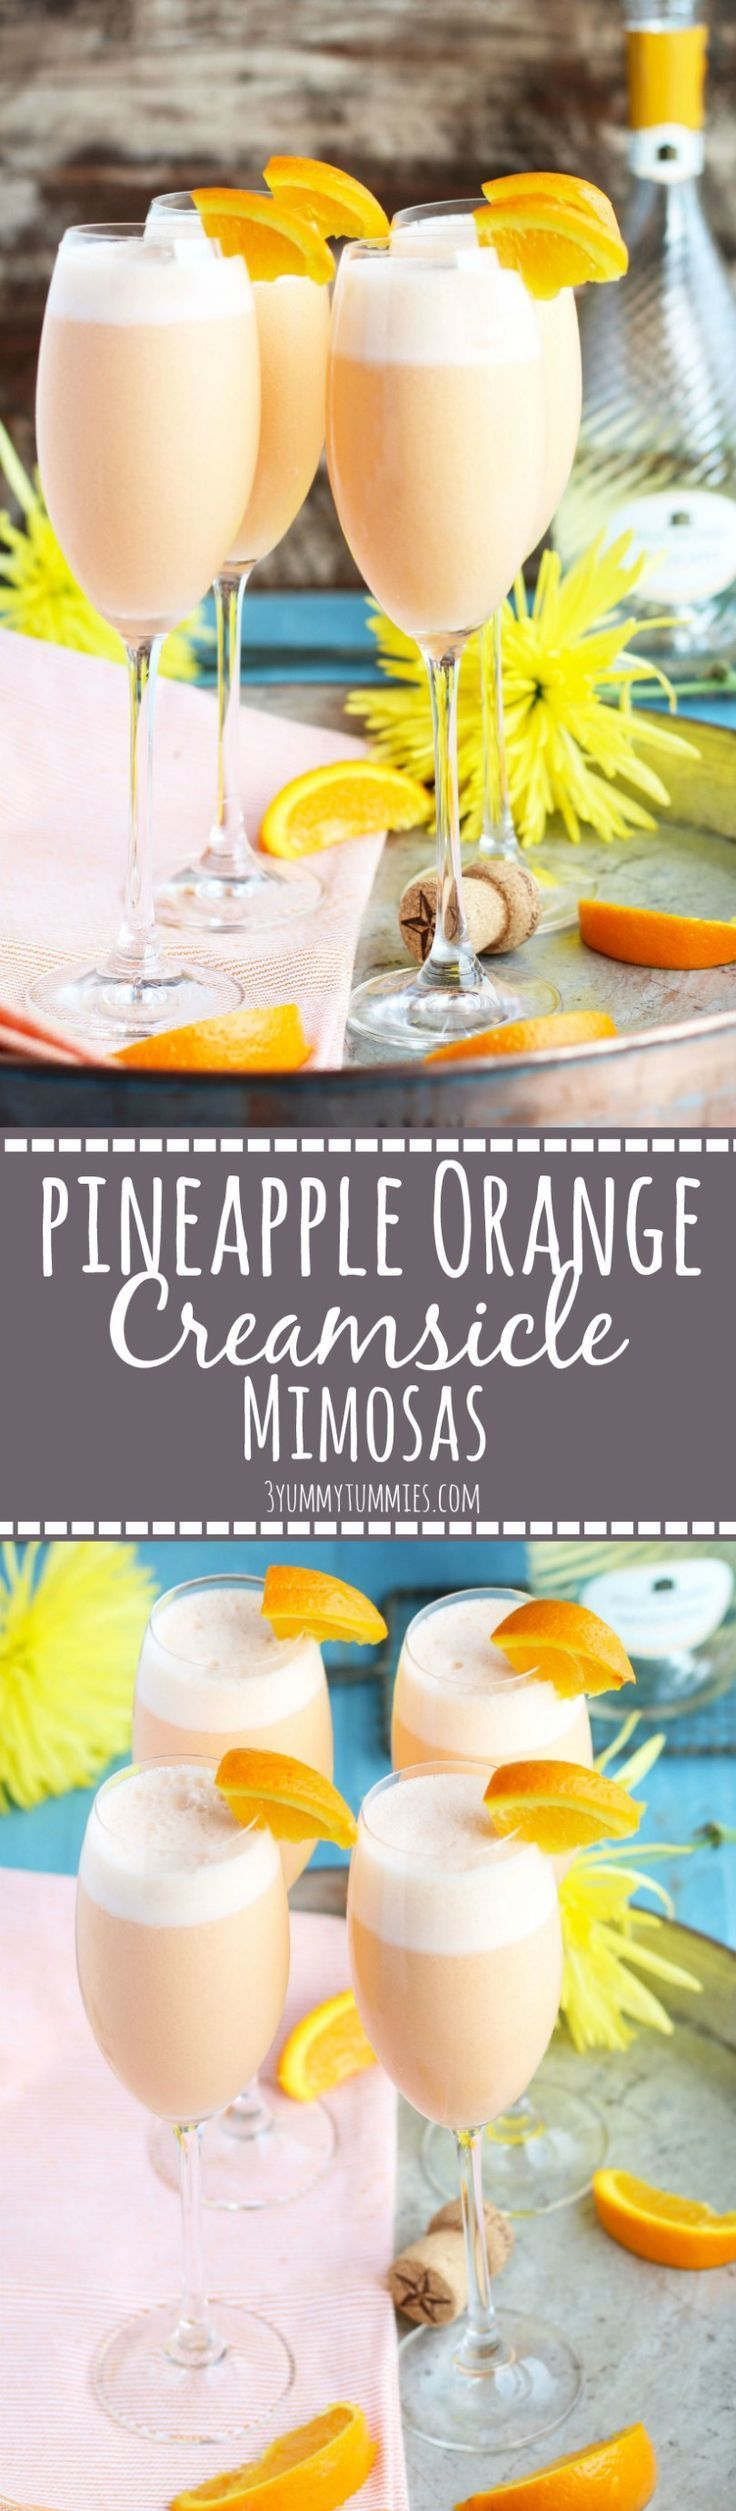 These Pineapple Orange Creamsicle Mimosas are an etherealblend of pineapple juice, orange sherbet and sparkling Moscato. Only 3 ingredients transforms the basic mimosas into a creamy, dreamy combination that will wow your guests at your next brunch. Blending the ingredients together ensures the perfect flavor combination in each sip